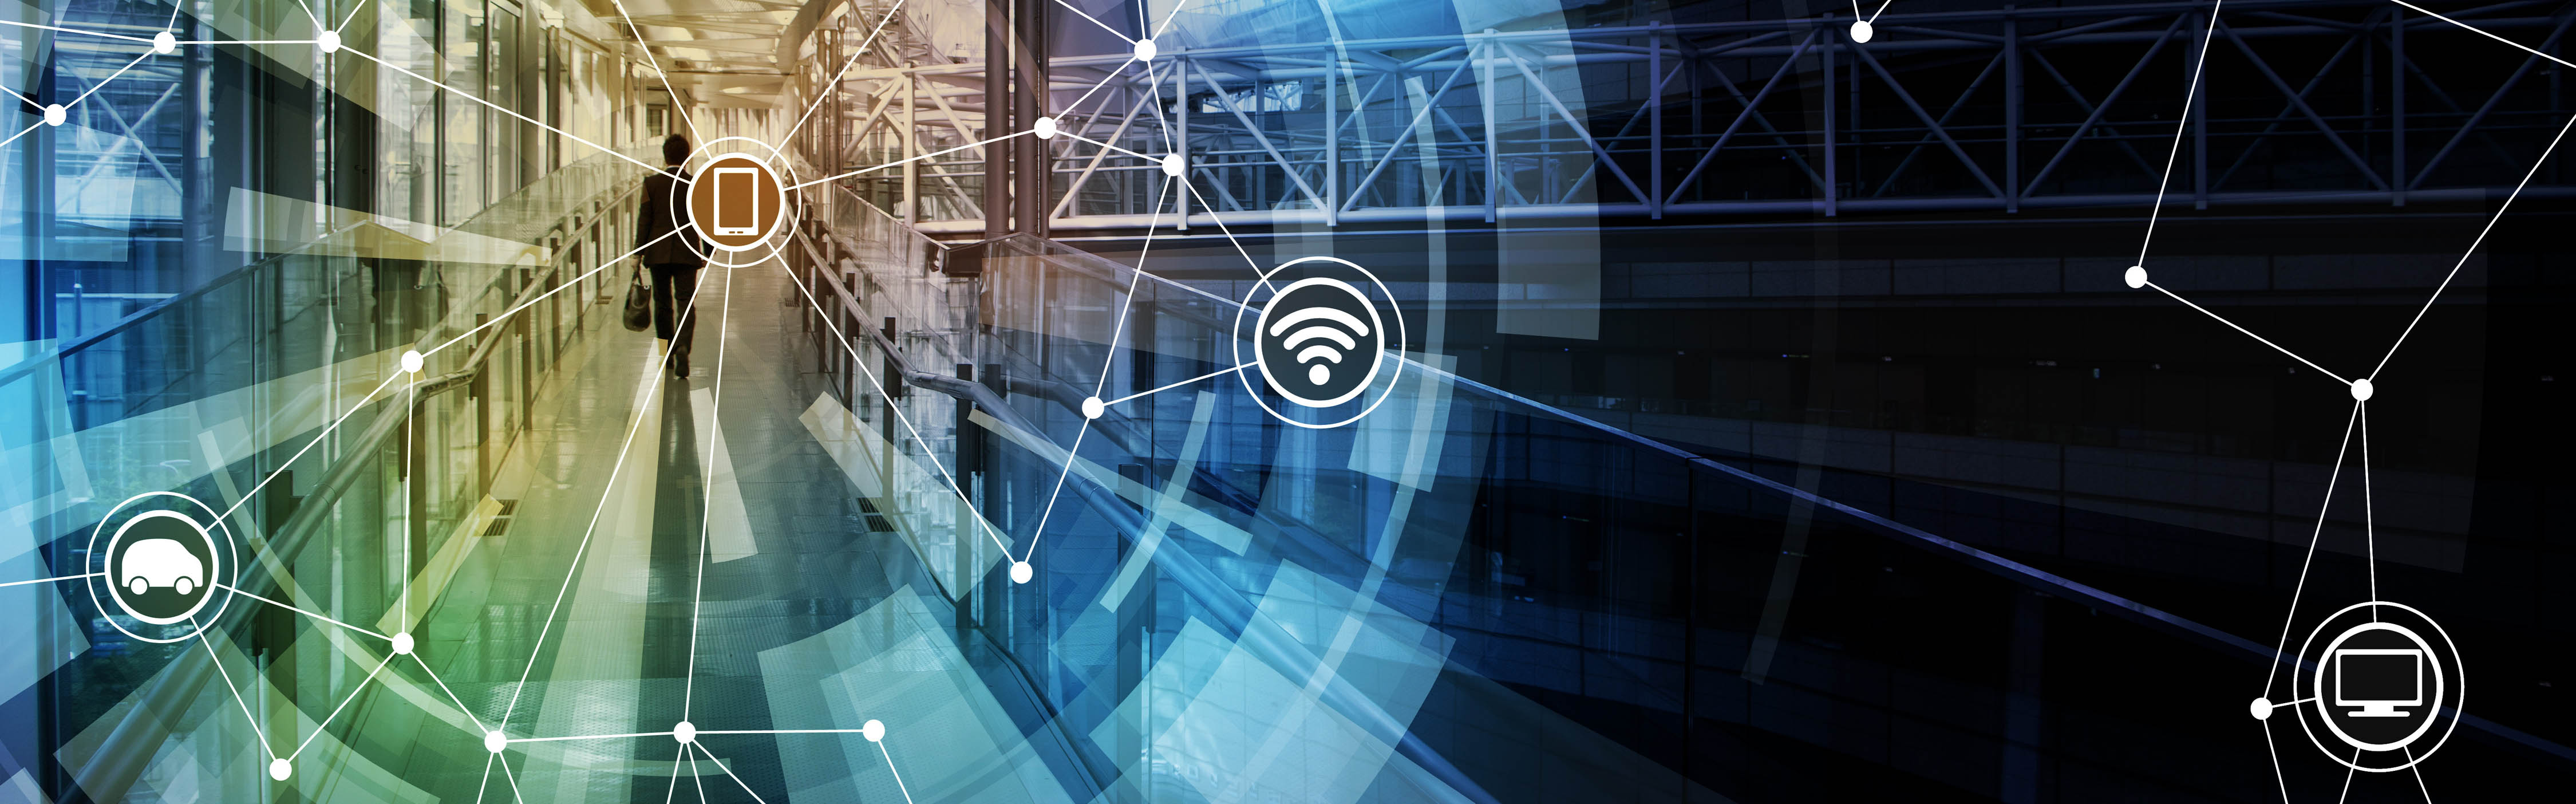 Communications Infrastructure for IoT​